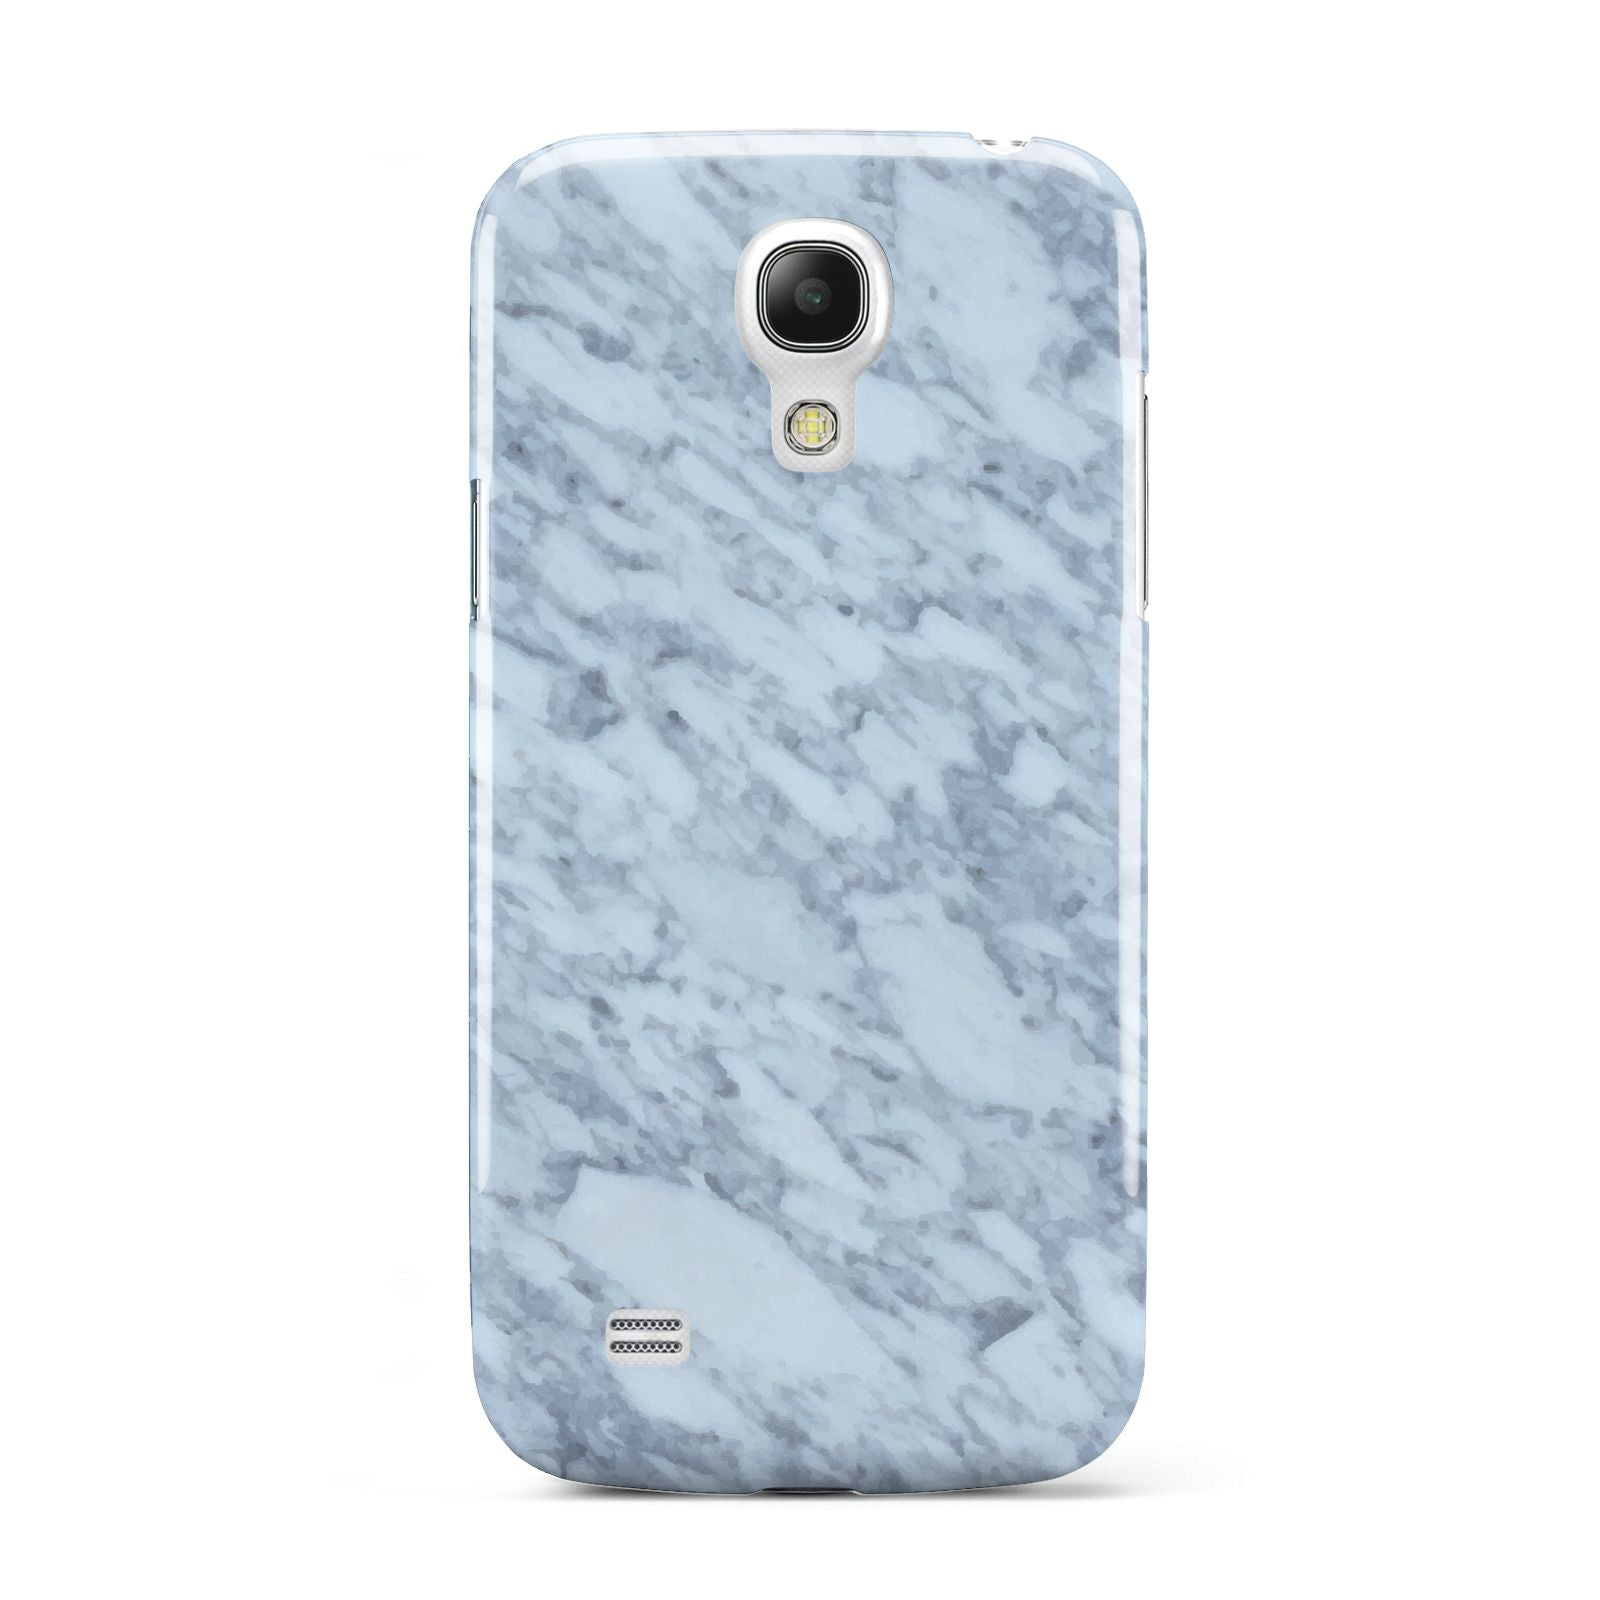 Faux Marble Grey 2 Samsung Galaxy S4 Mini Case